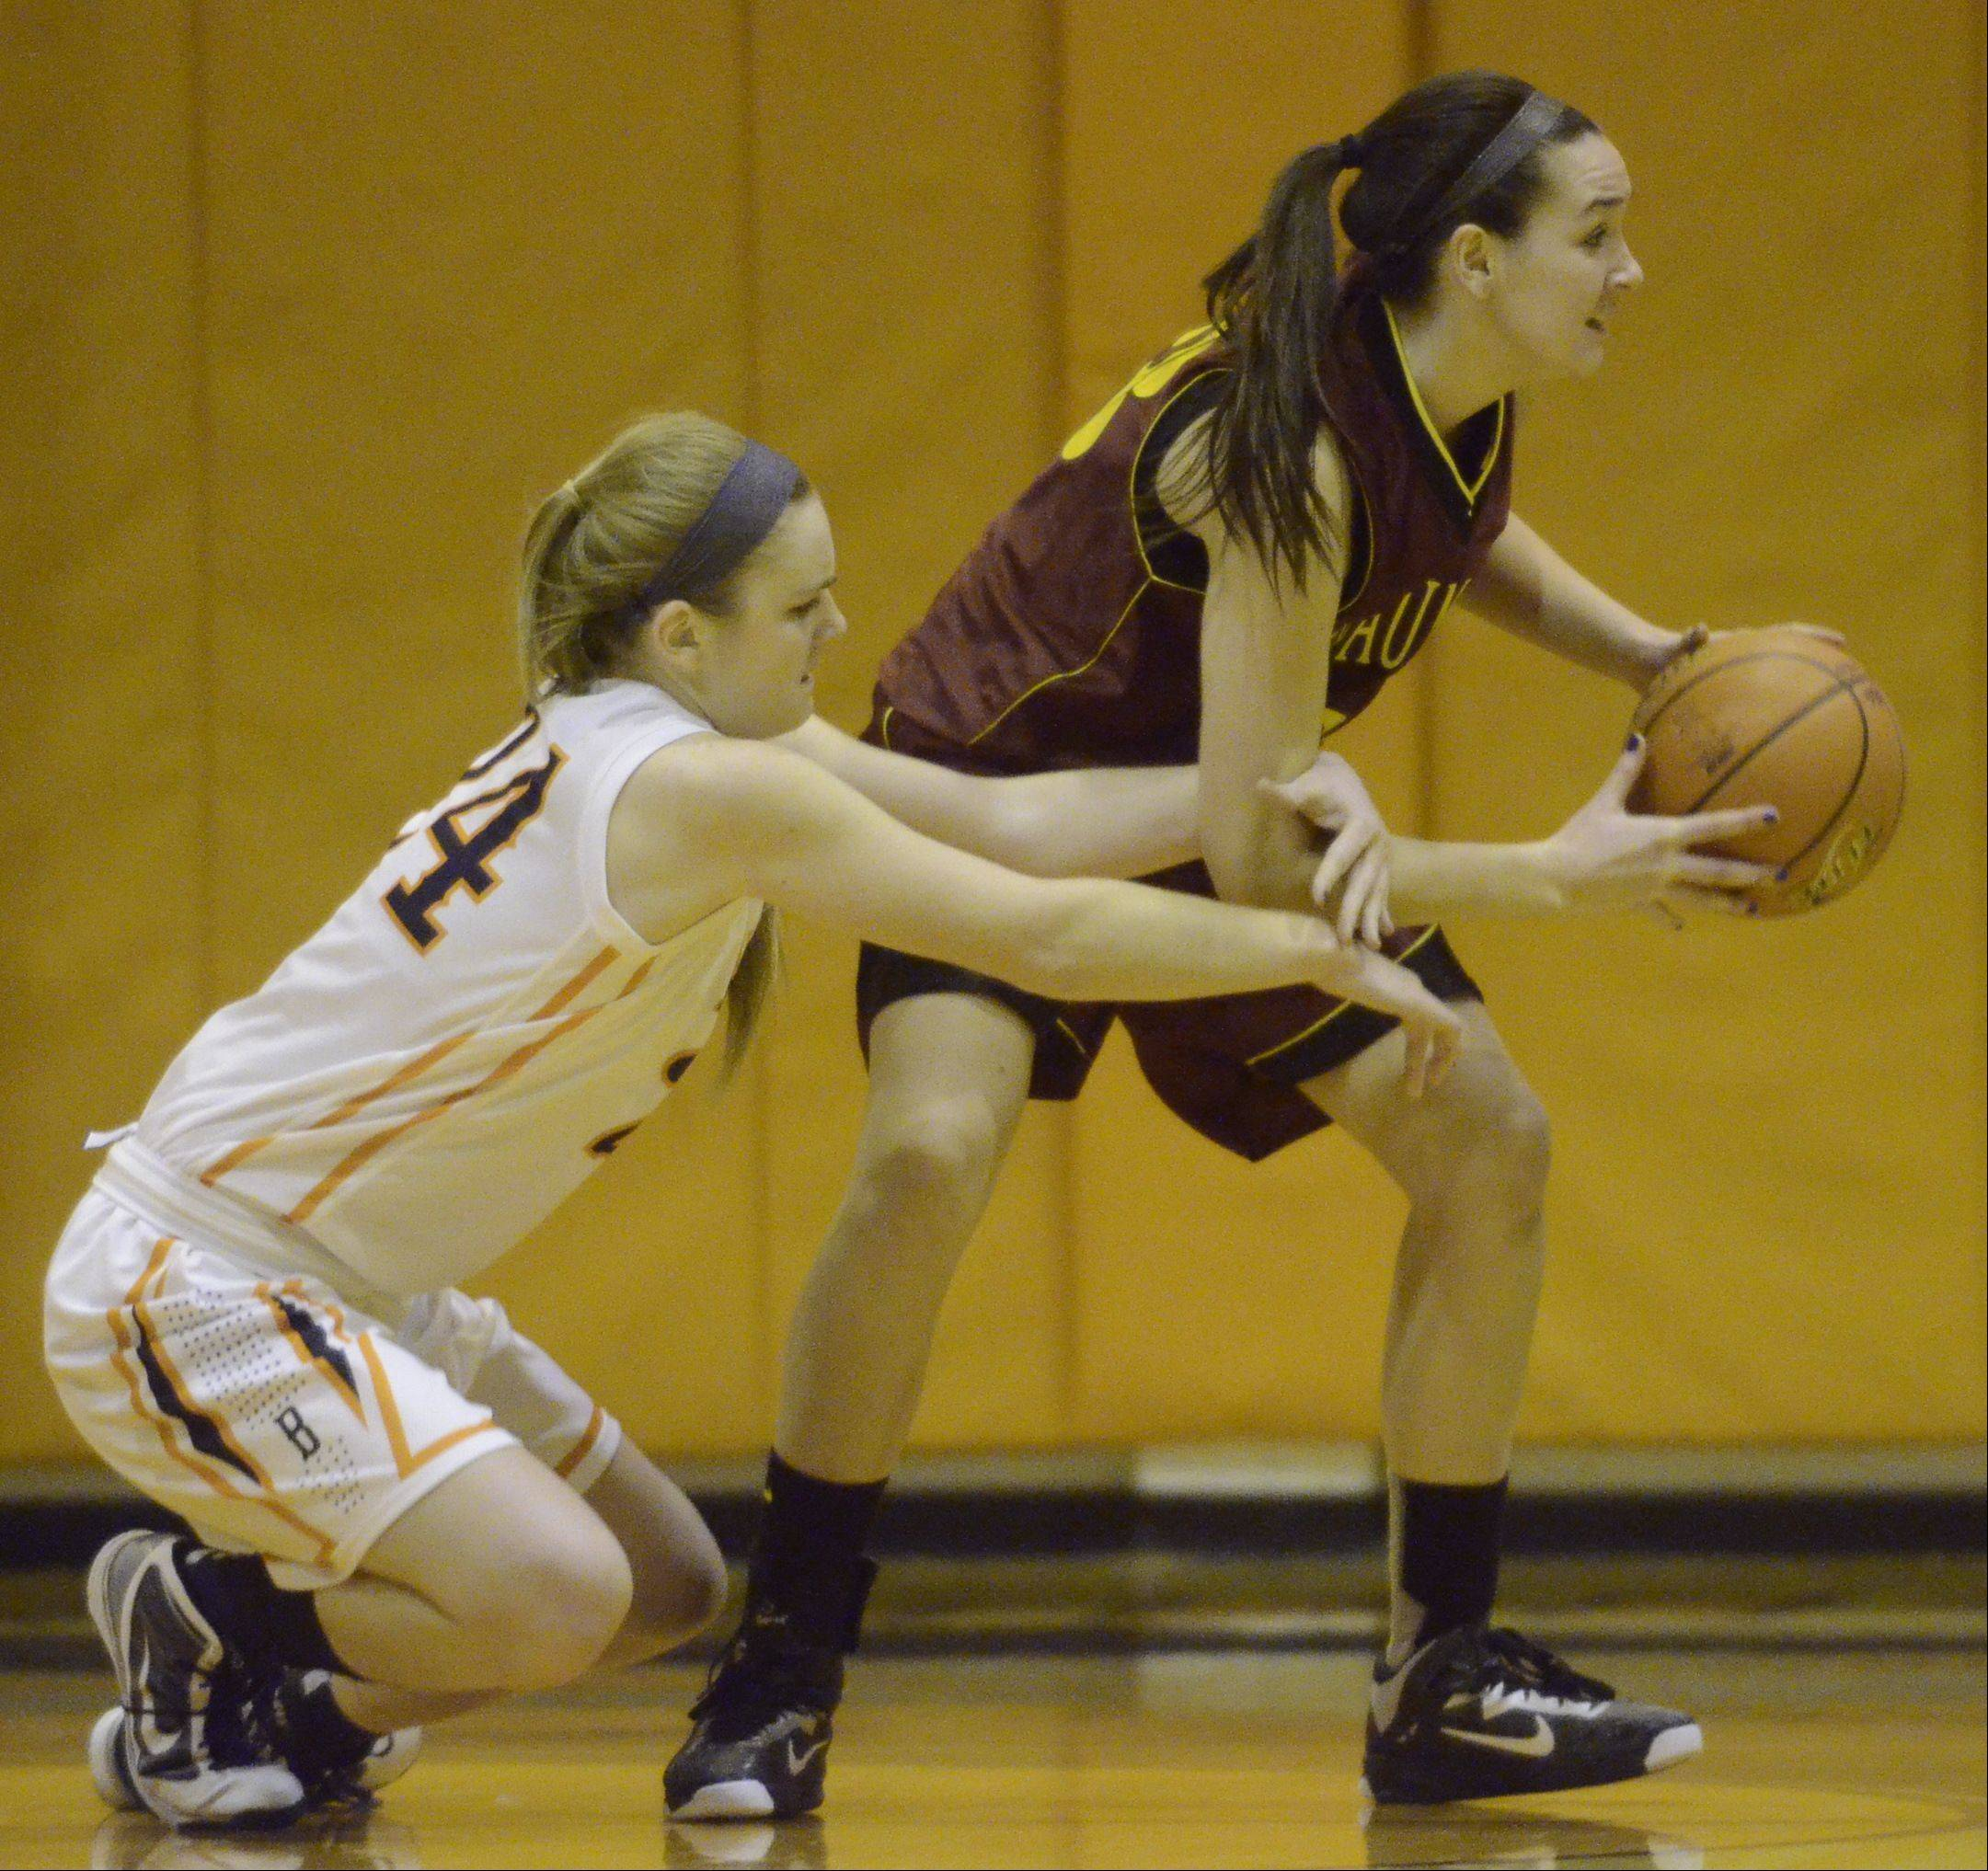 Images from the Buffalo Grove vs. Schaumburg girls basketball game Tuesday, November 27th, in Buffalo Grove.